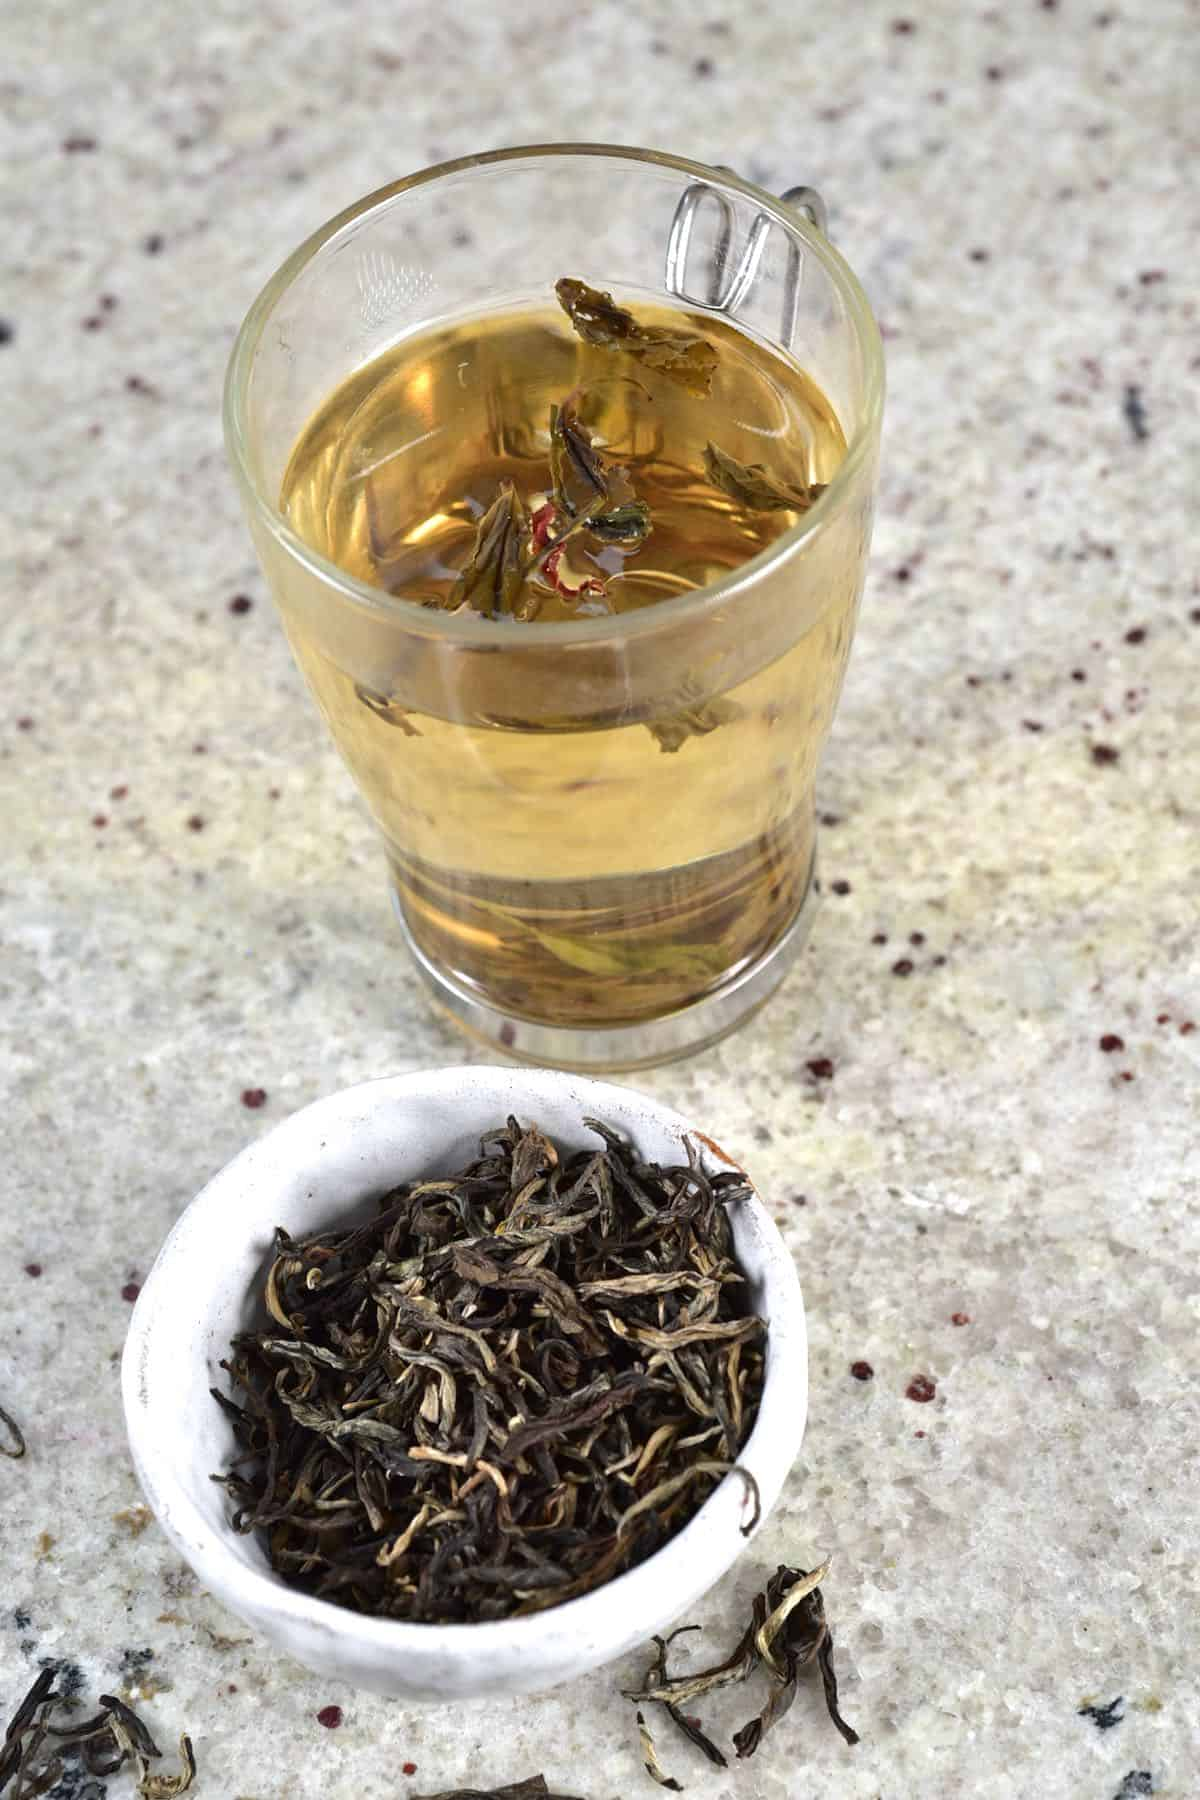 Tea in a glass with hot water and some loose tea leaves in a small bowl